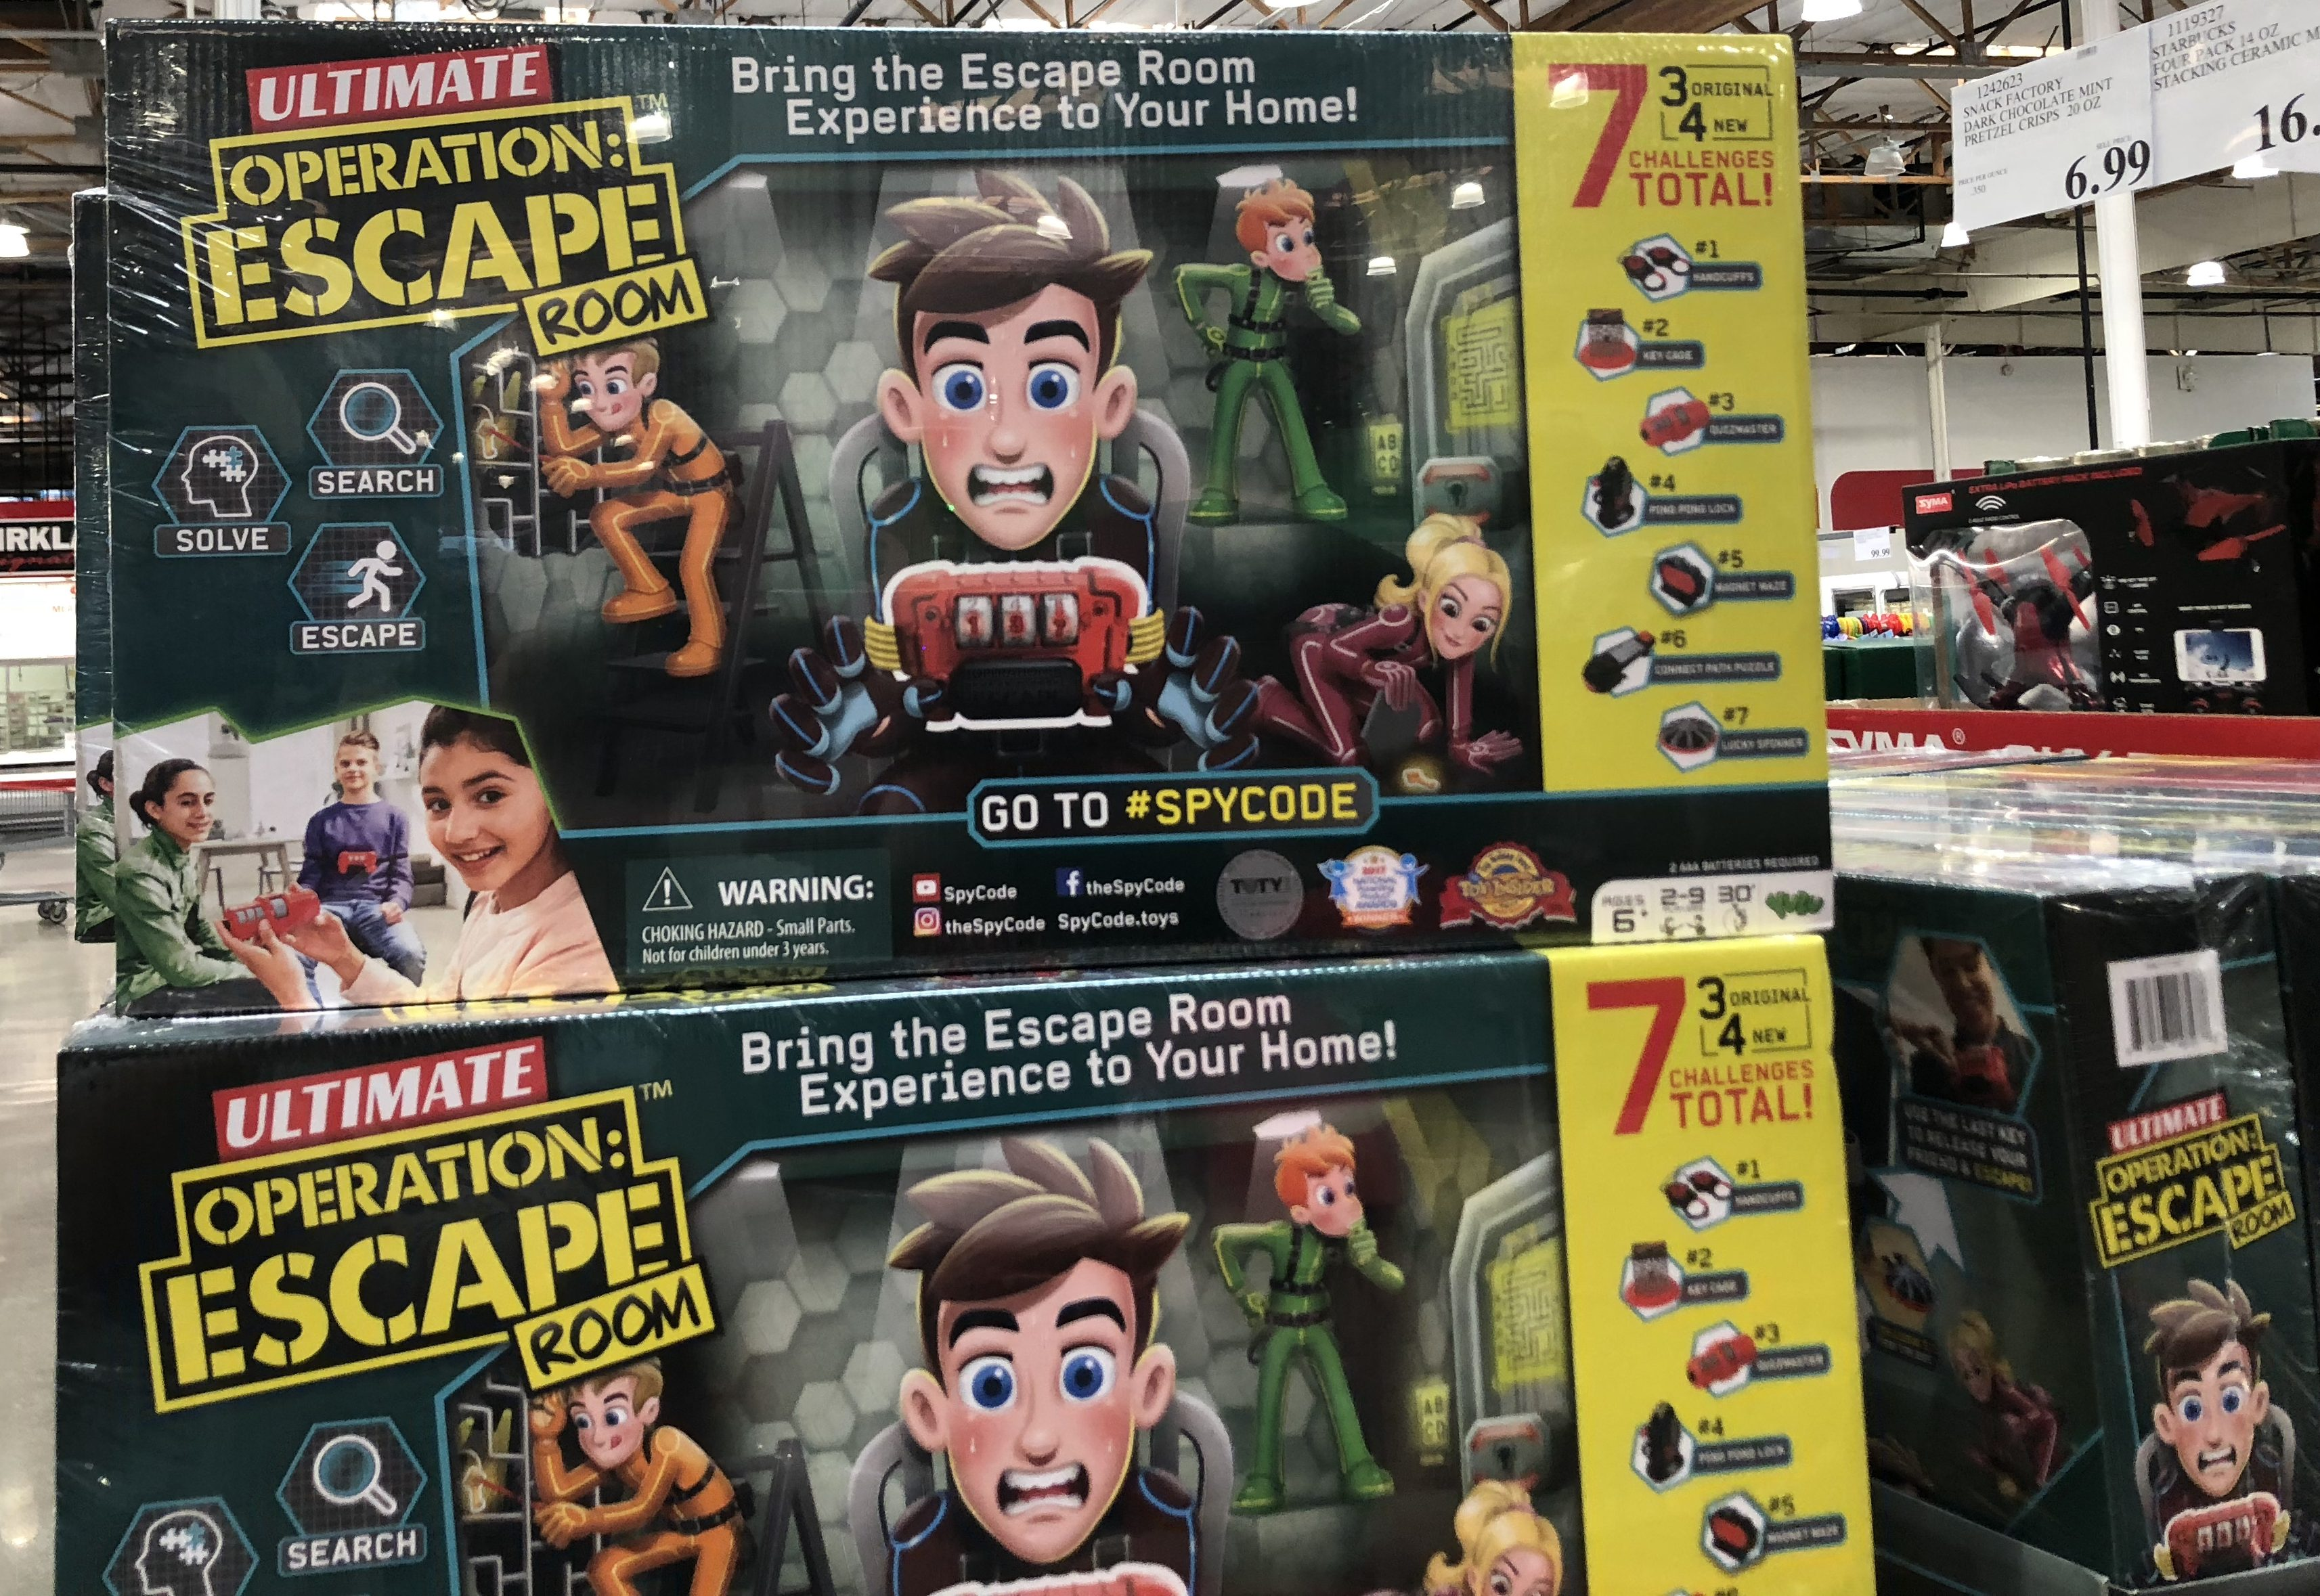 The best holiday toy deals for 2018 include the Ultimate Escape Room Game at Costco